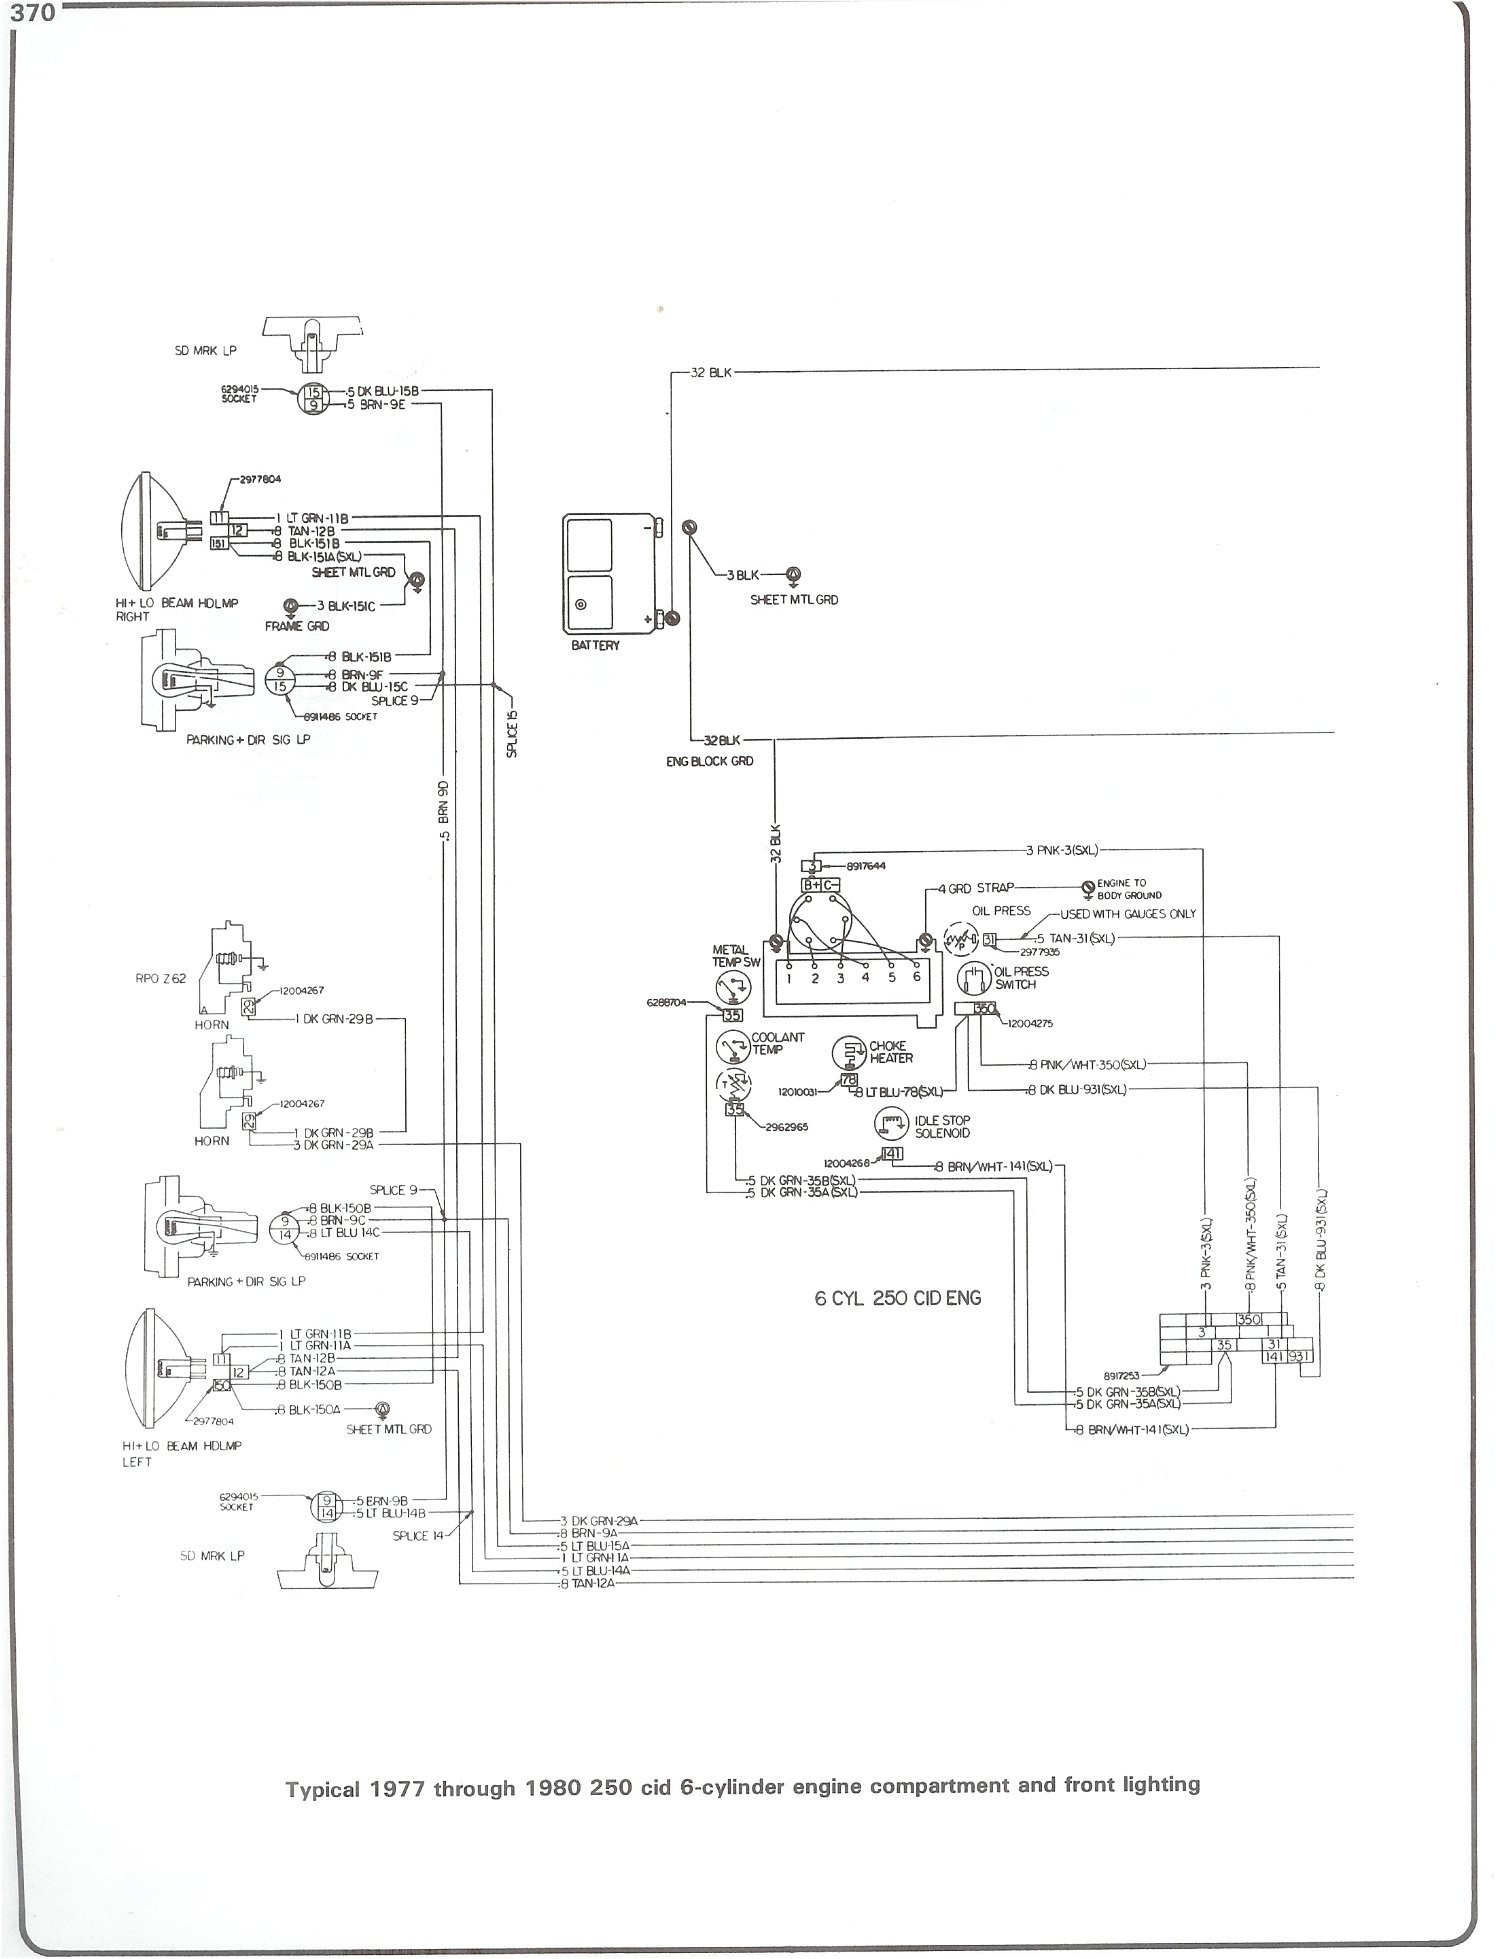 85 chevy silverado wiring diagram 3sgte ecu gmc truck ignition diy enthusiasts